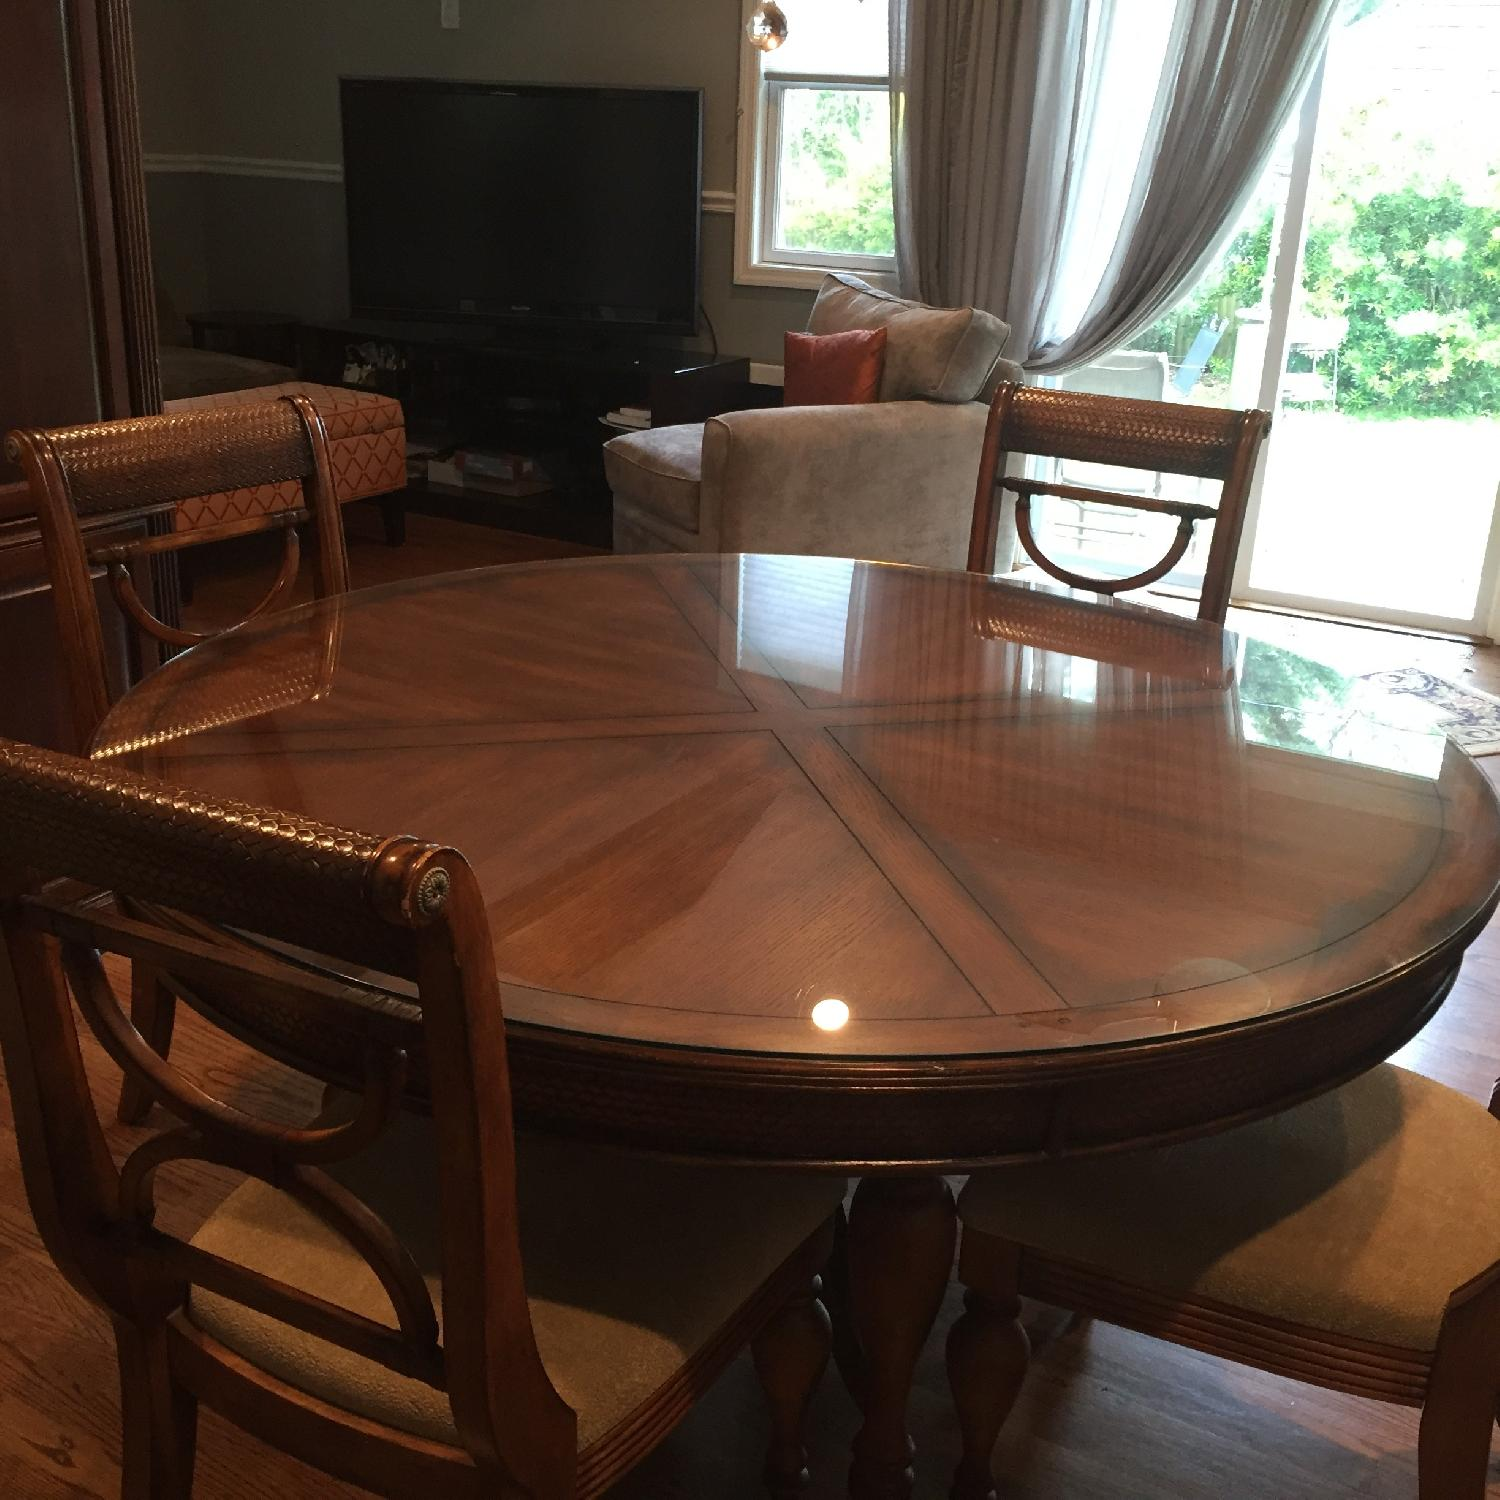 Dining Room Glass Top Round Table w/ 6 Chairs - image-1